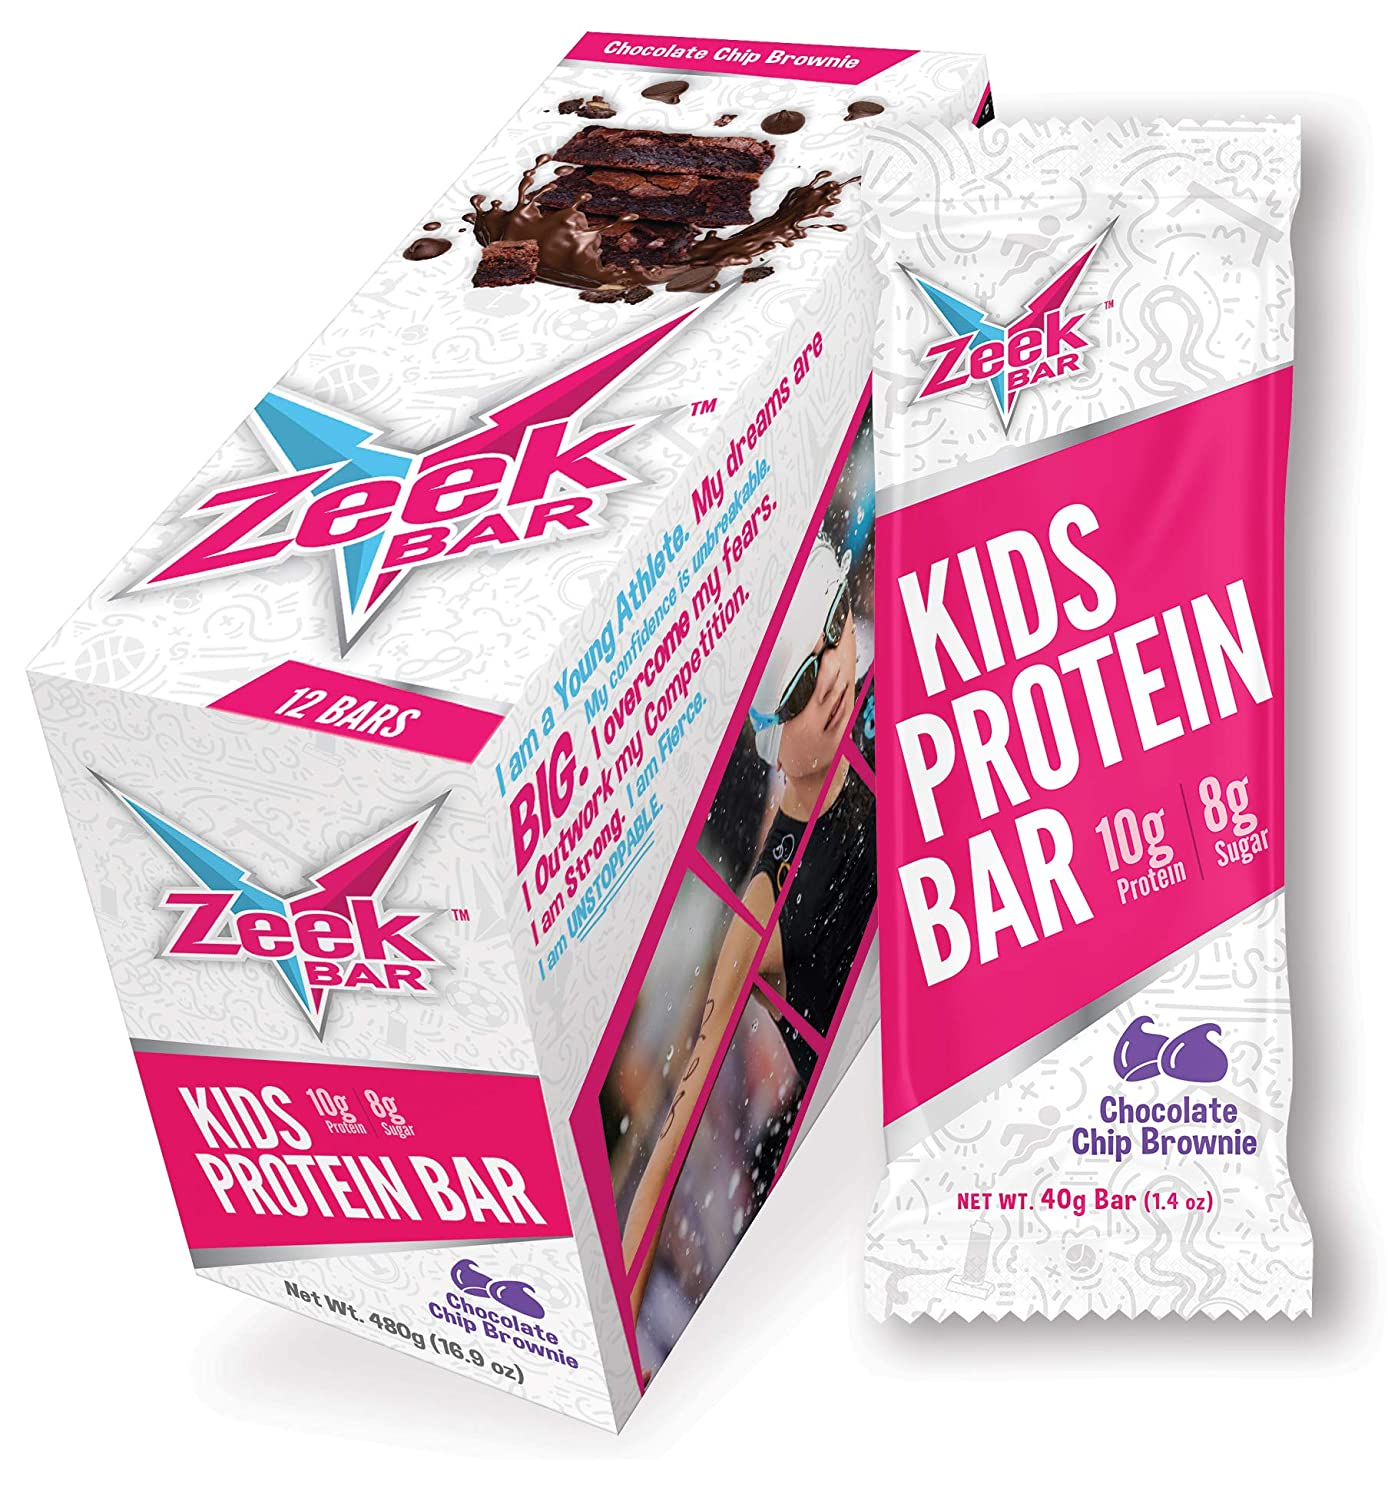 Zeek Kids Bar: Protein-Packed Kids Snack Bar | Real Ingredients, Delicious Flavors | Gluten Free, Low Sugar | Chocolate Chip Brownie, 12 Bars